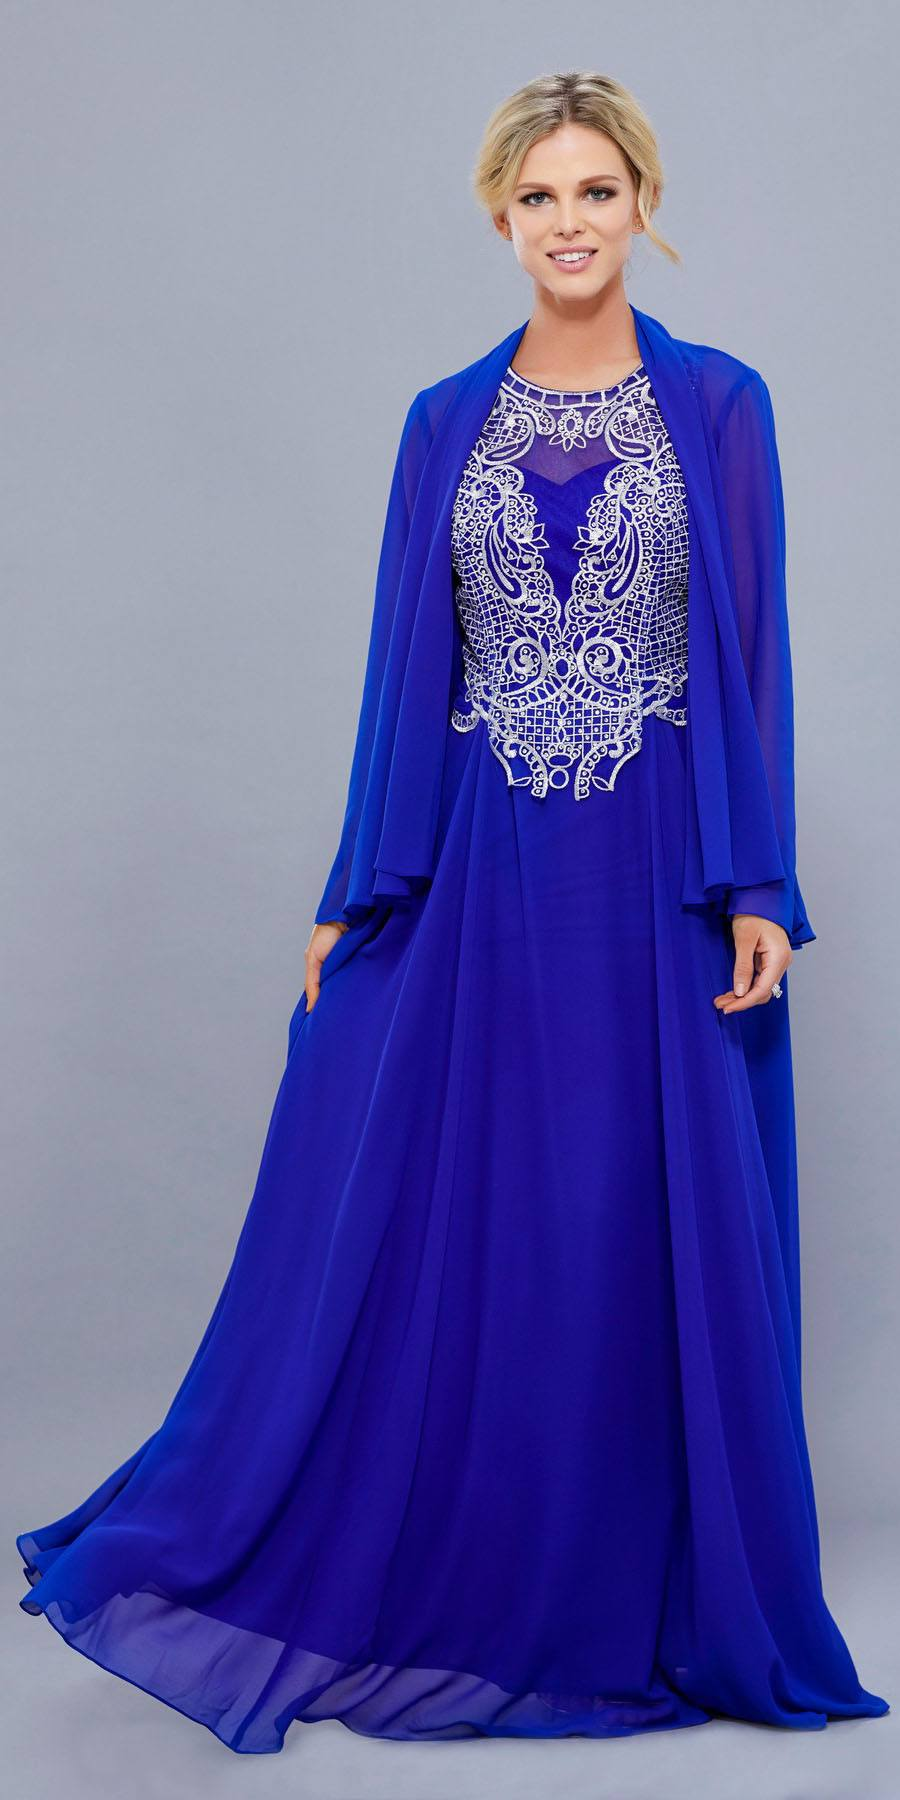 Royal Blue Embroidered Bodice Floor Length Formal Dress with Jacket ...